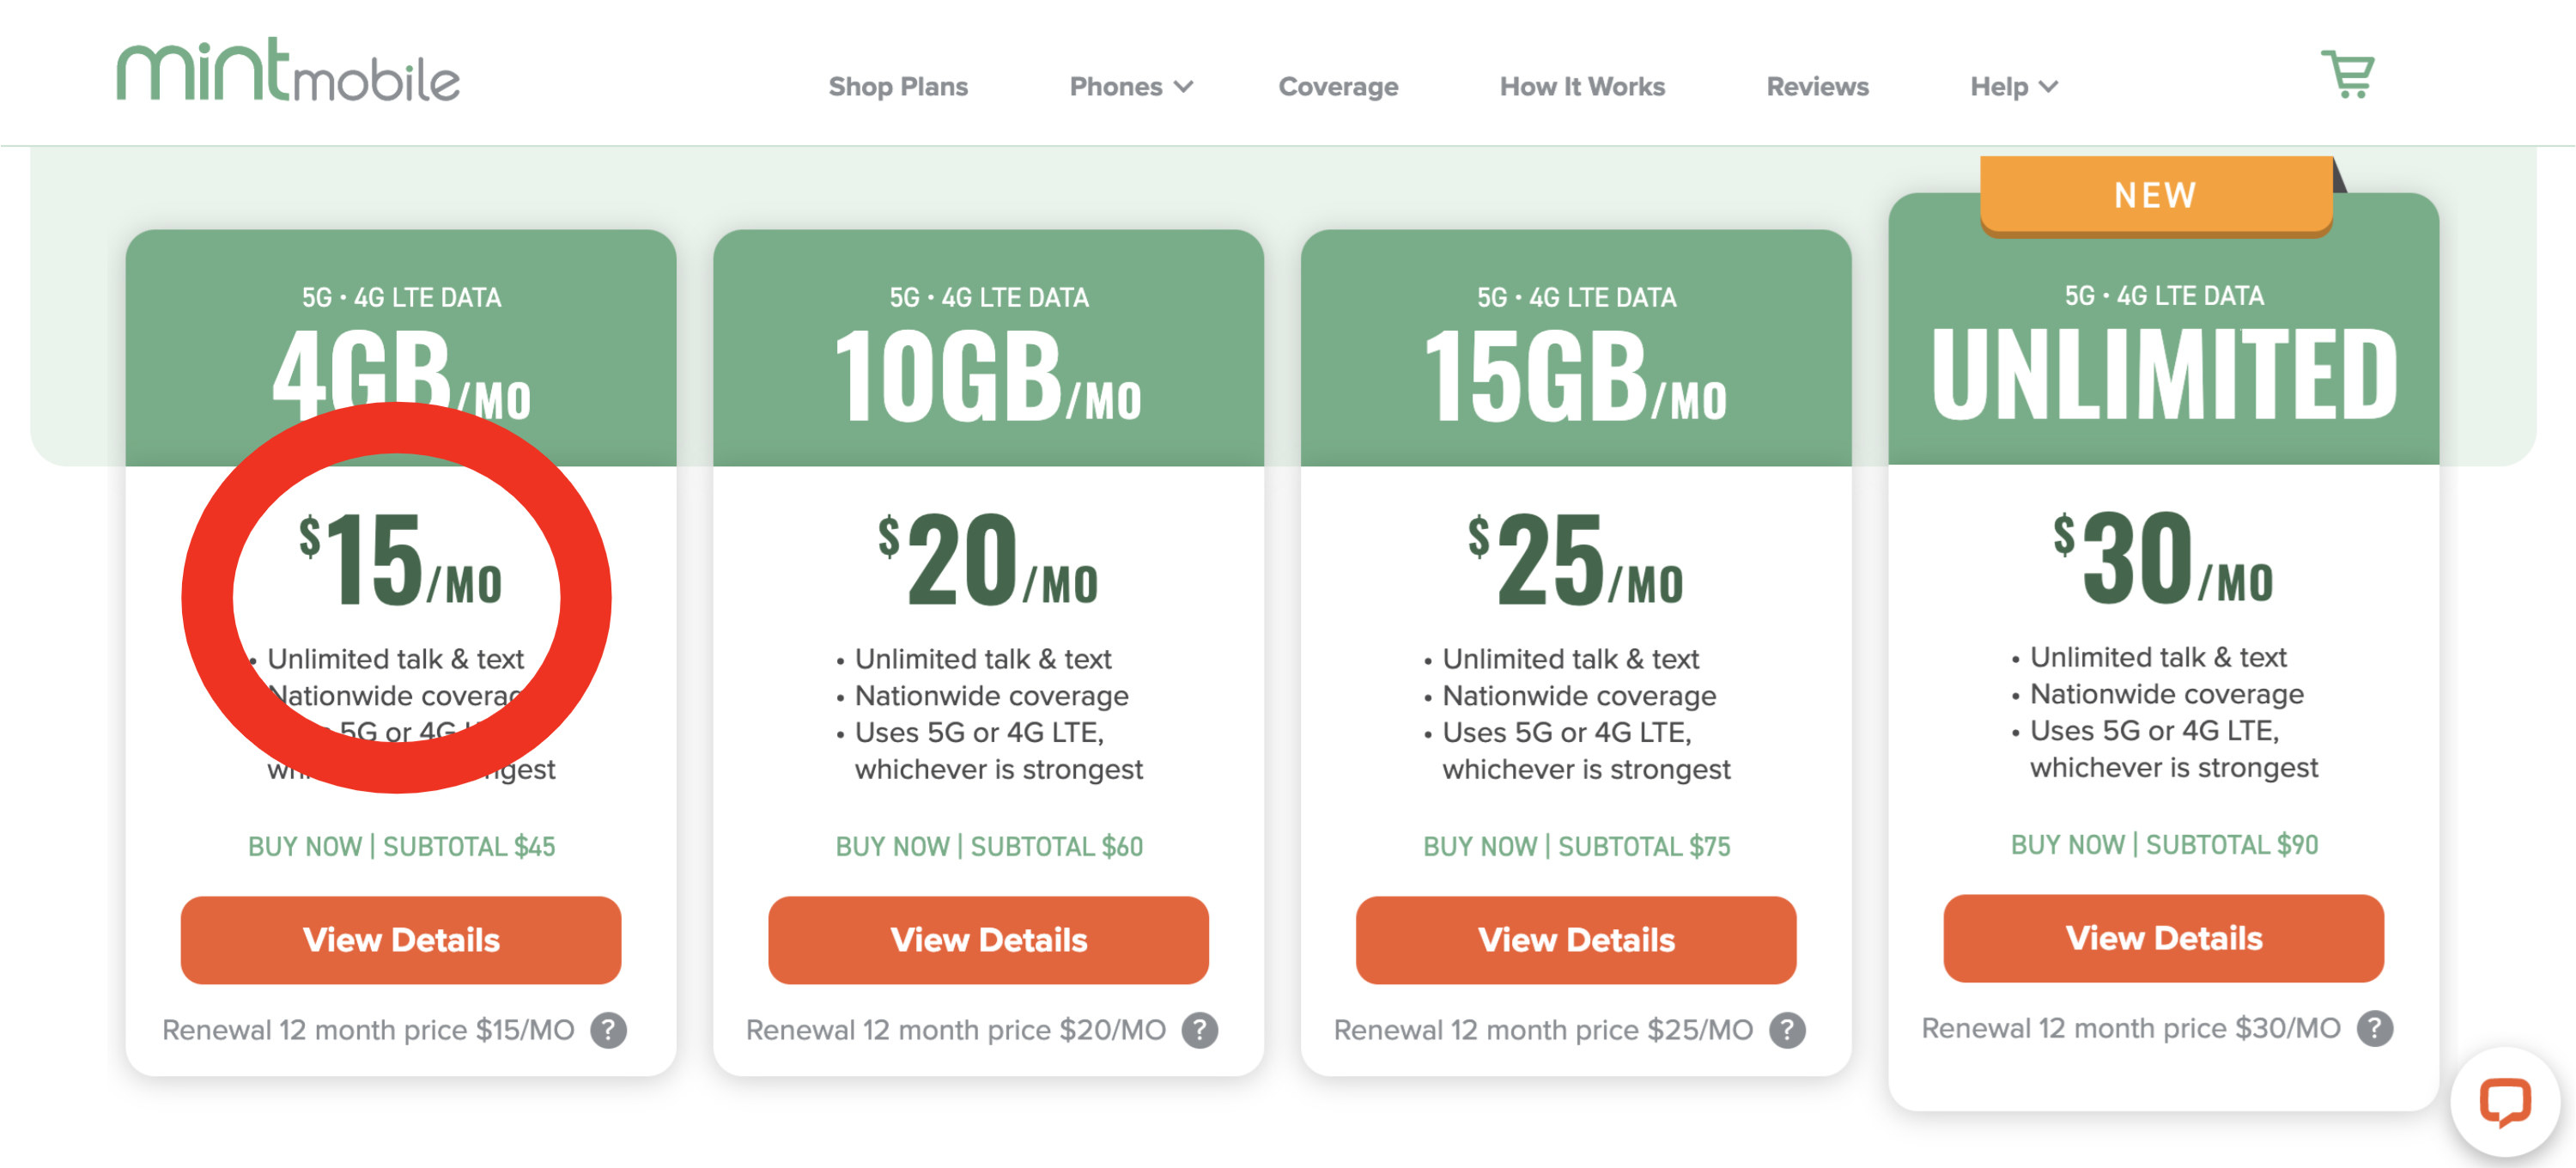 different mint mobile plans available ranging from $15 to $30/month